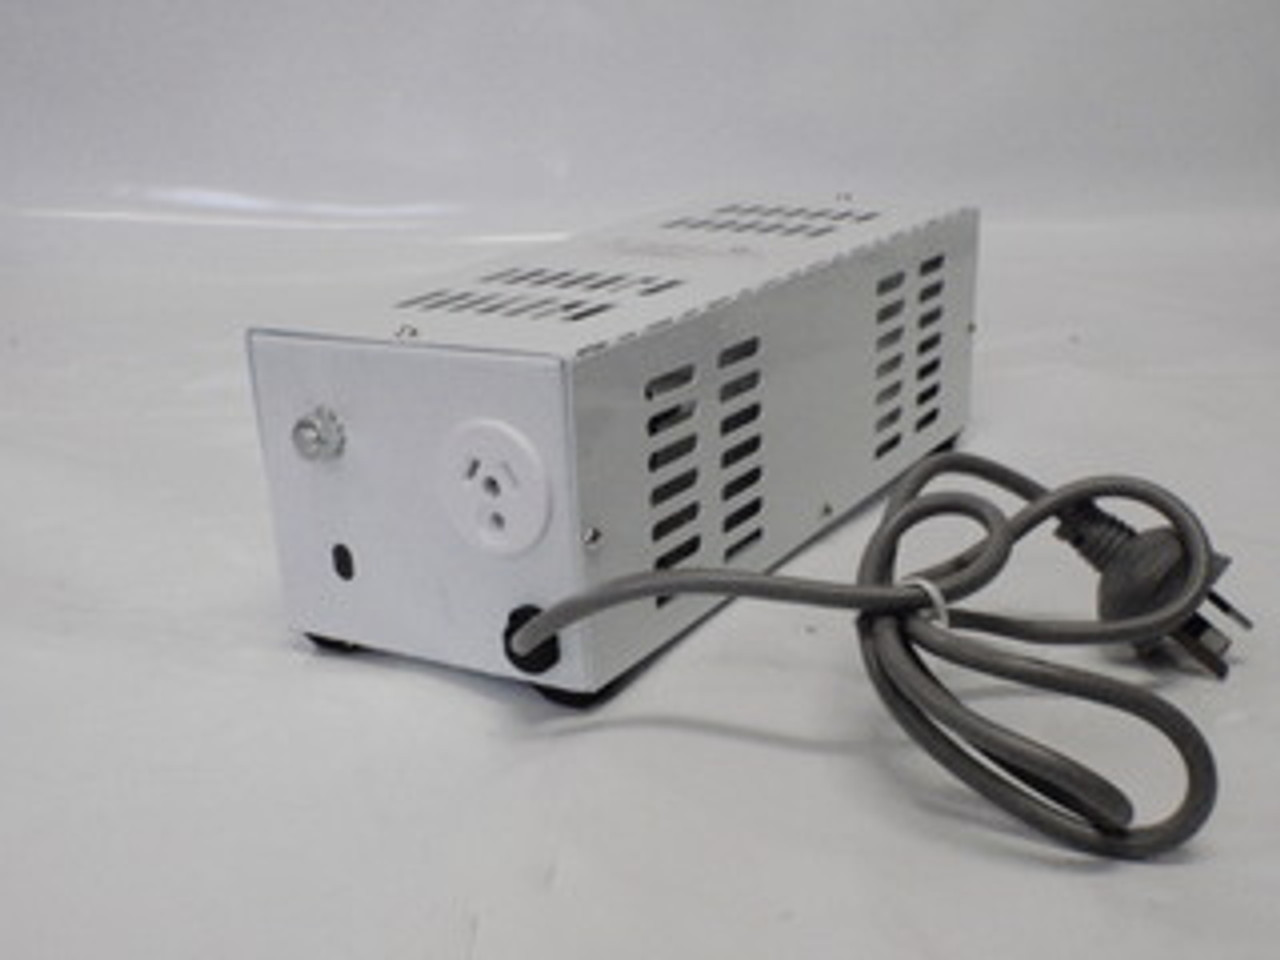 600w JB Hps Lighting Ballast